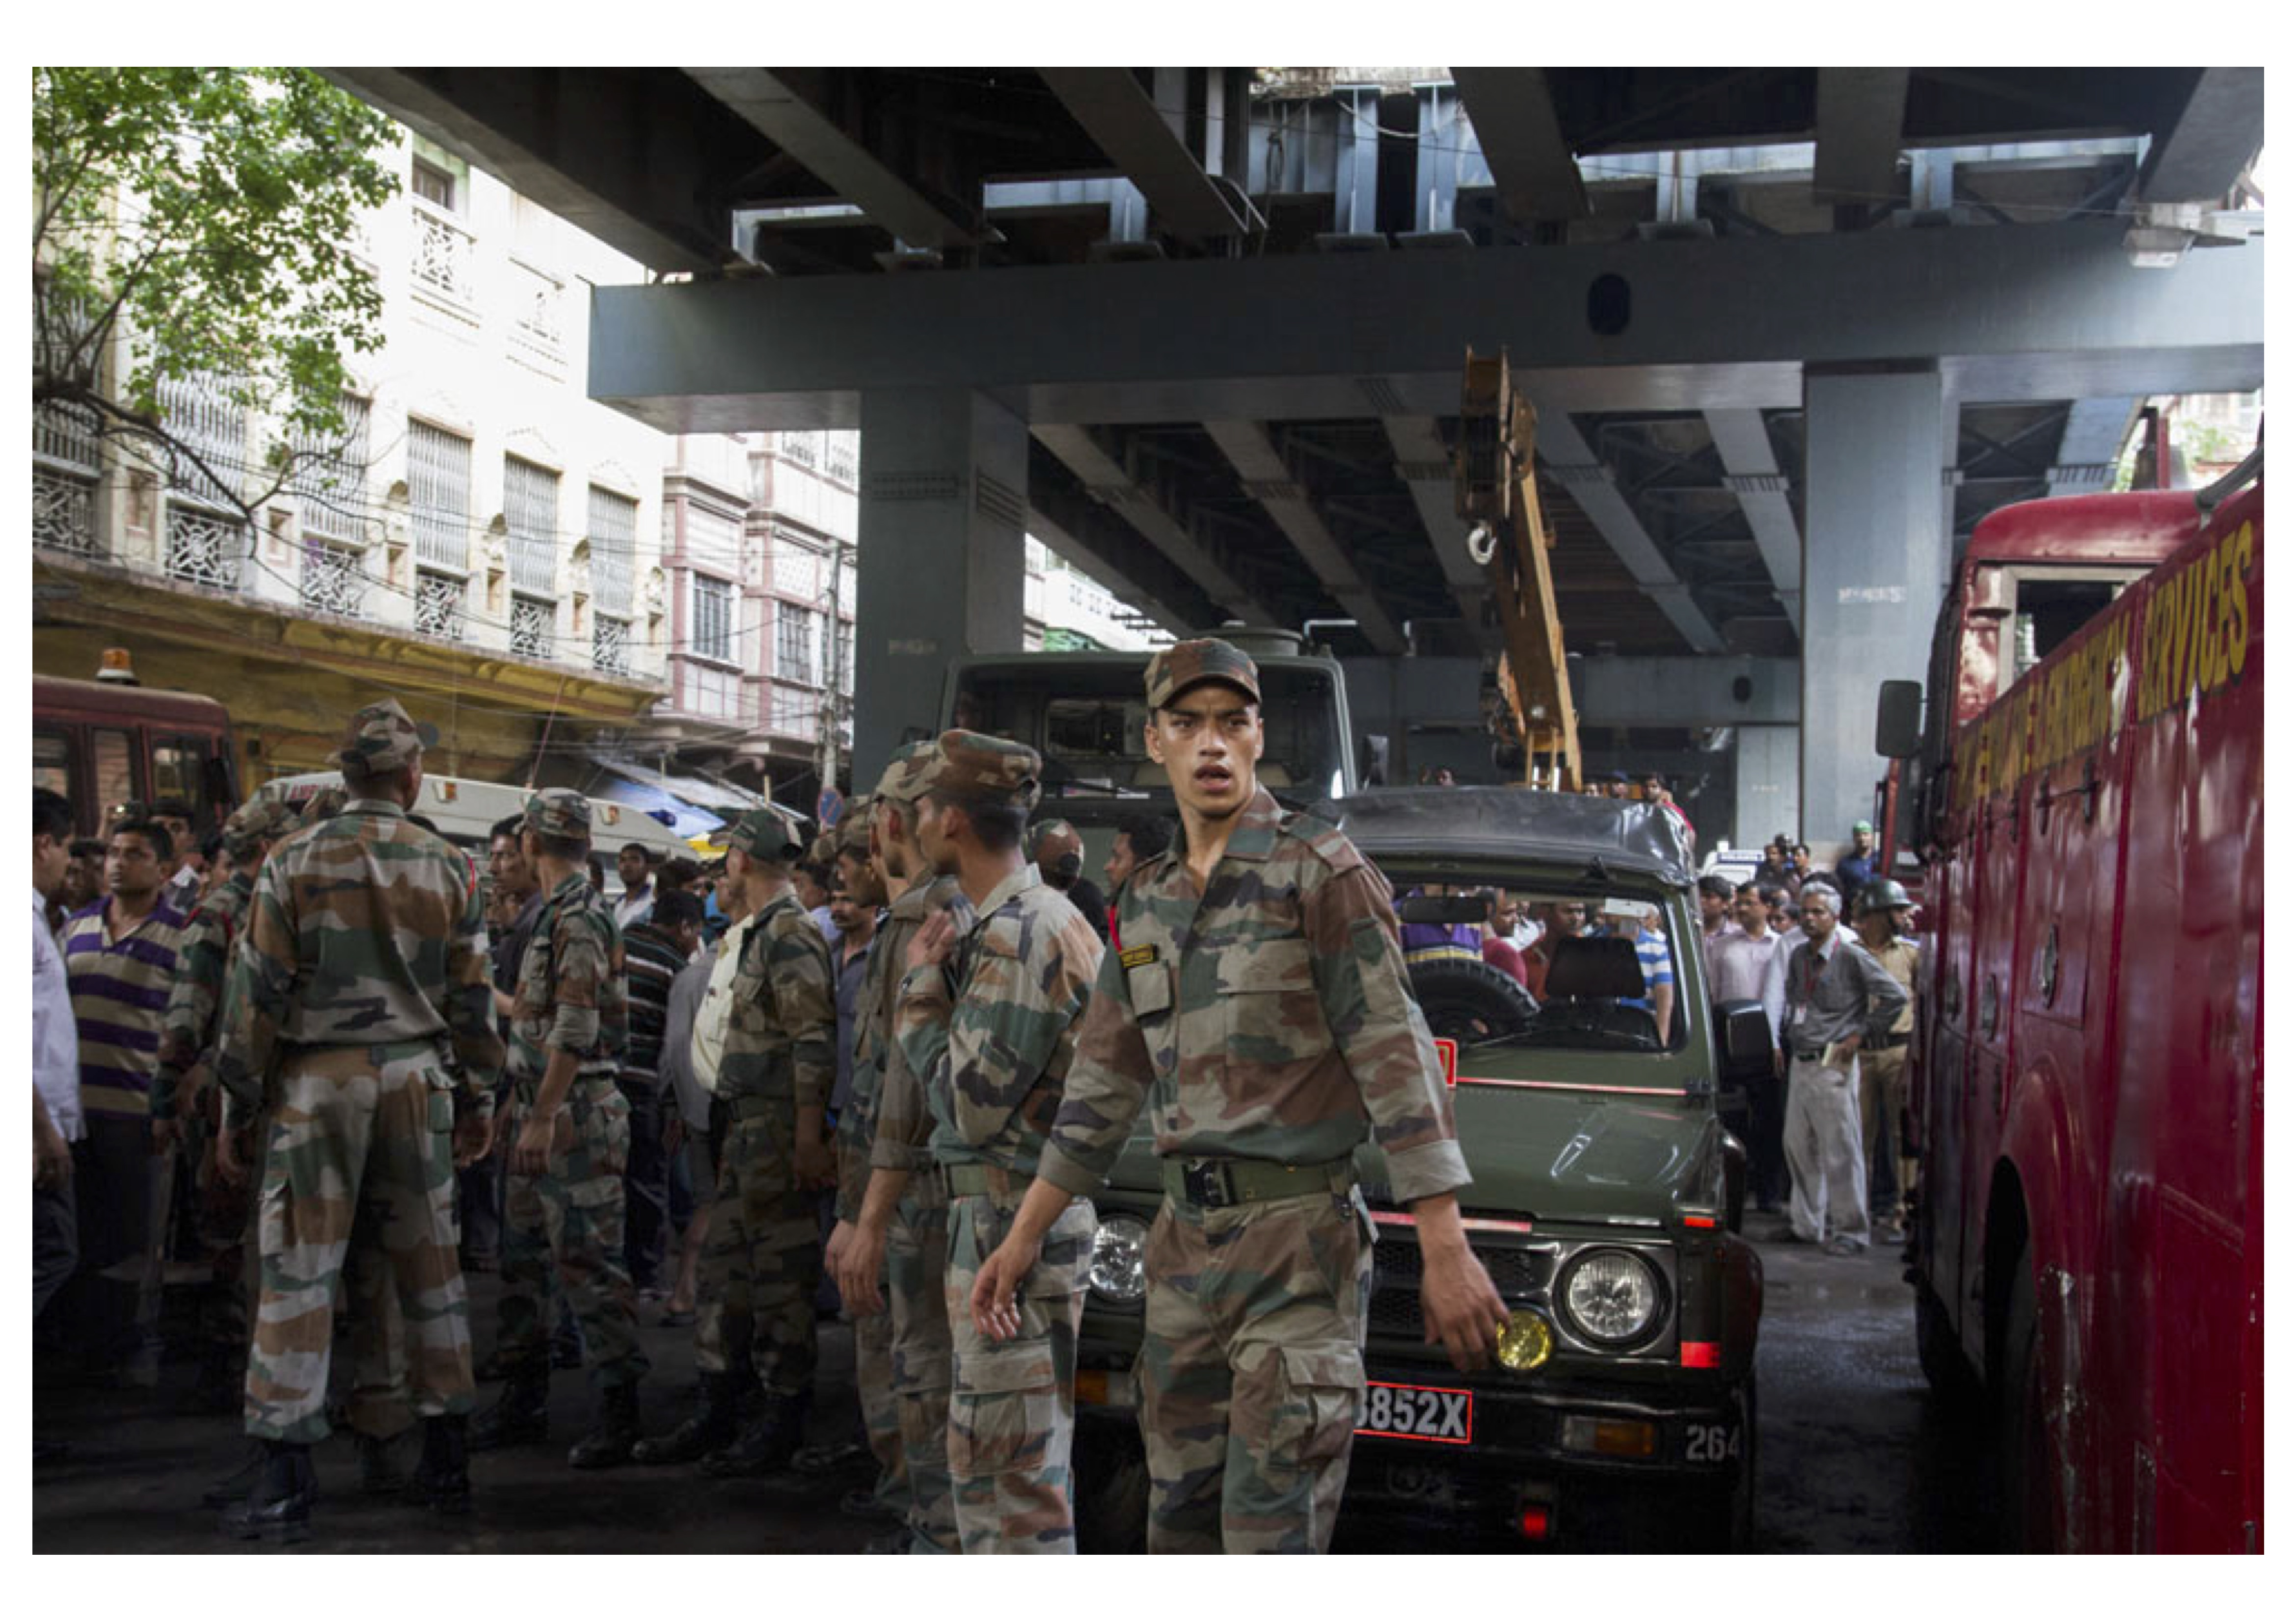 Owing to the immense magnitude of the disaster, eventually the army was called in to assist the rescue operations.